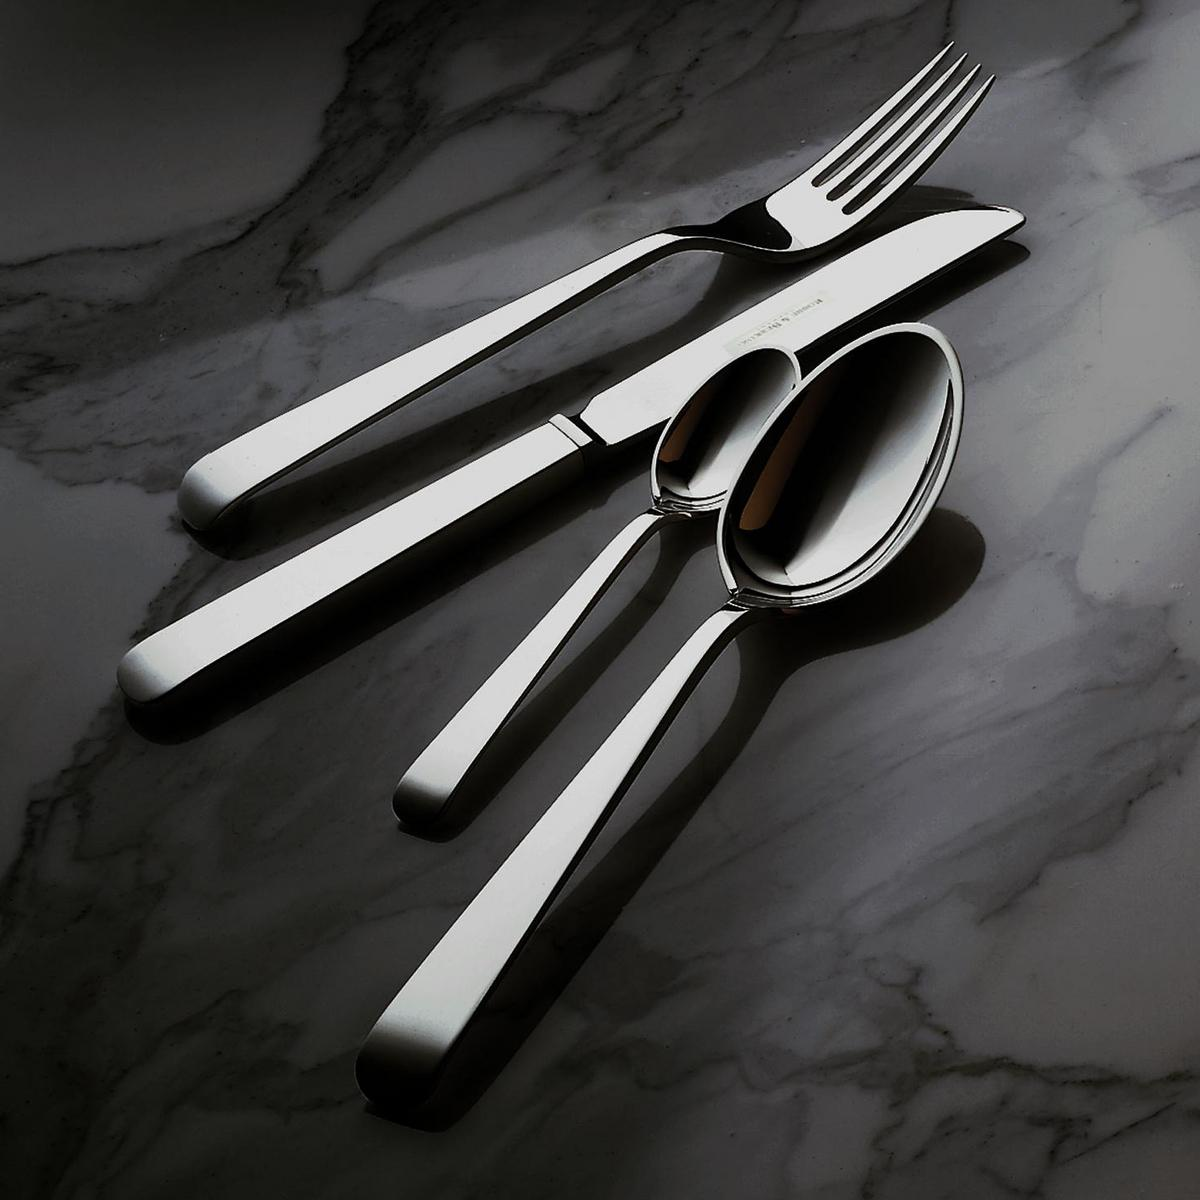 robbe berking alta cutlery silverplated. Black Bedroom Furniture Sets. Home Design Ideas